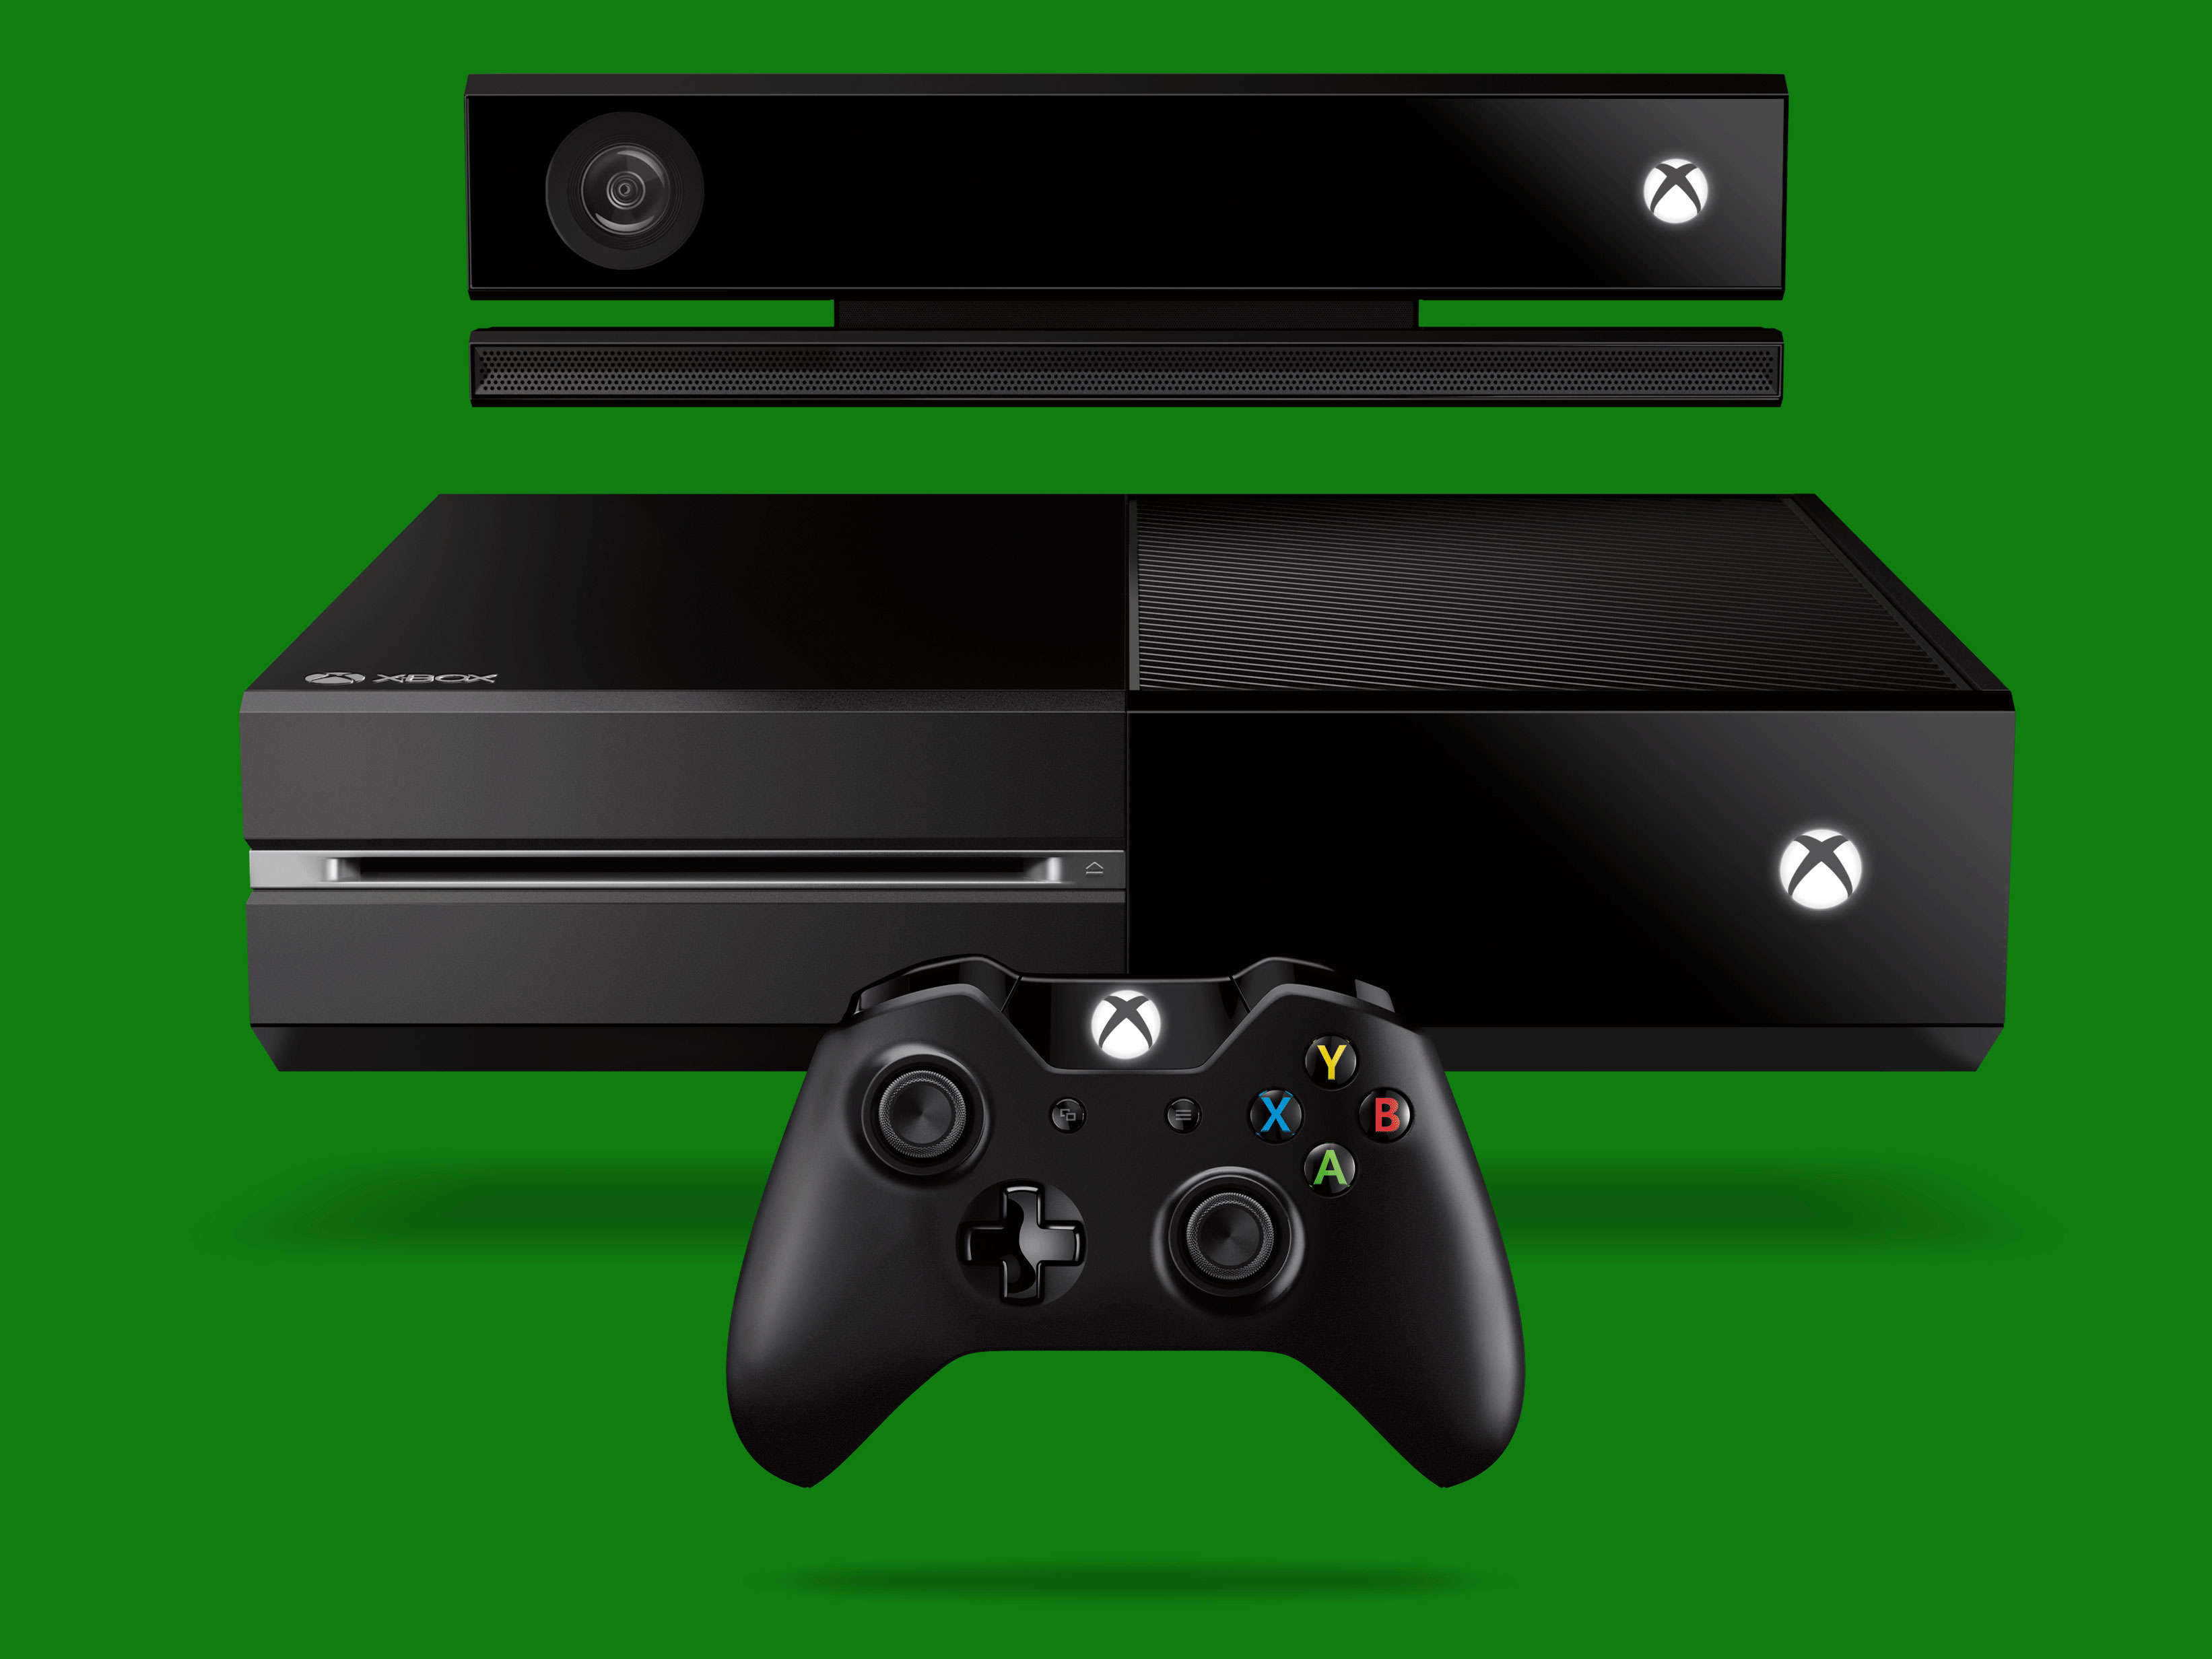 Xbox One HD Wallpaper - WallpaperSafari